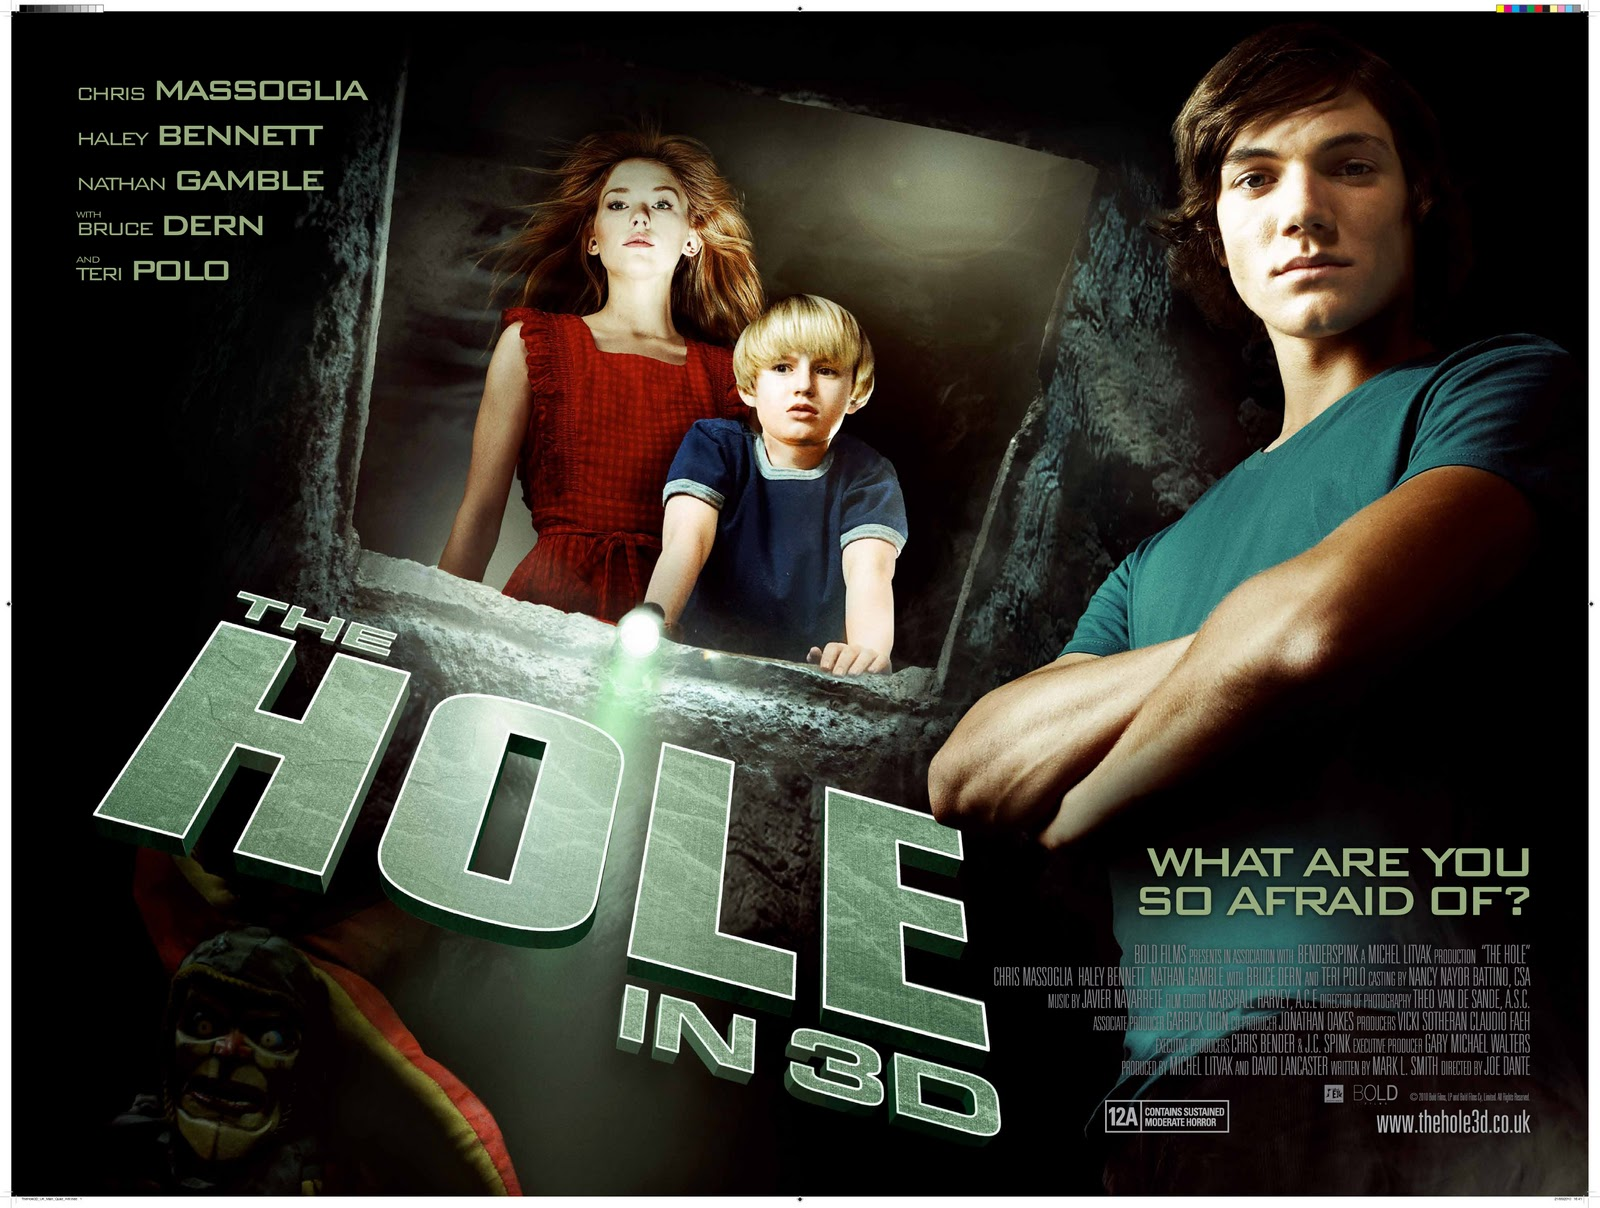 BLACK HOLE REVIEWS  Classic 3 D horror films    not for sale in 3